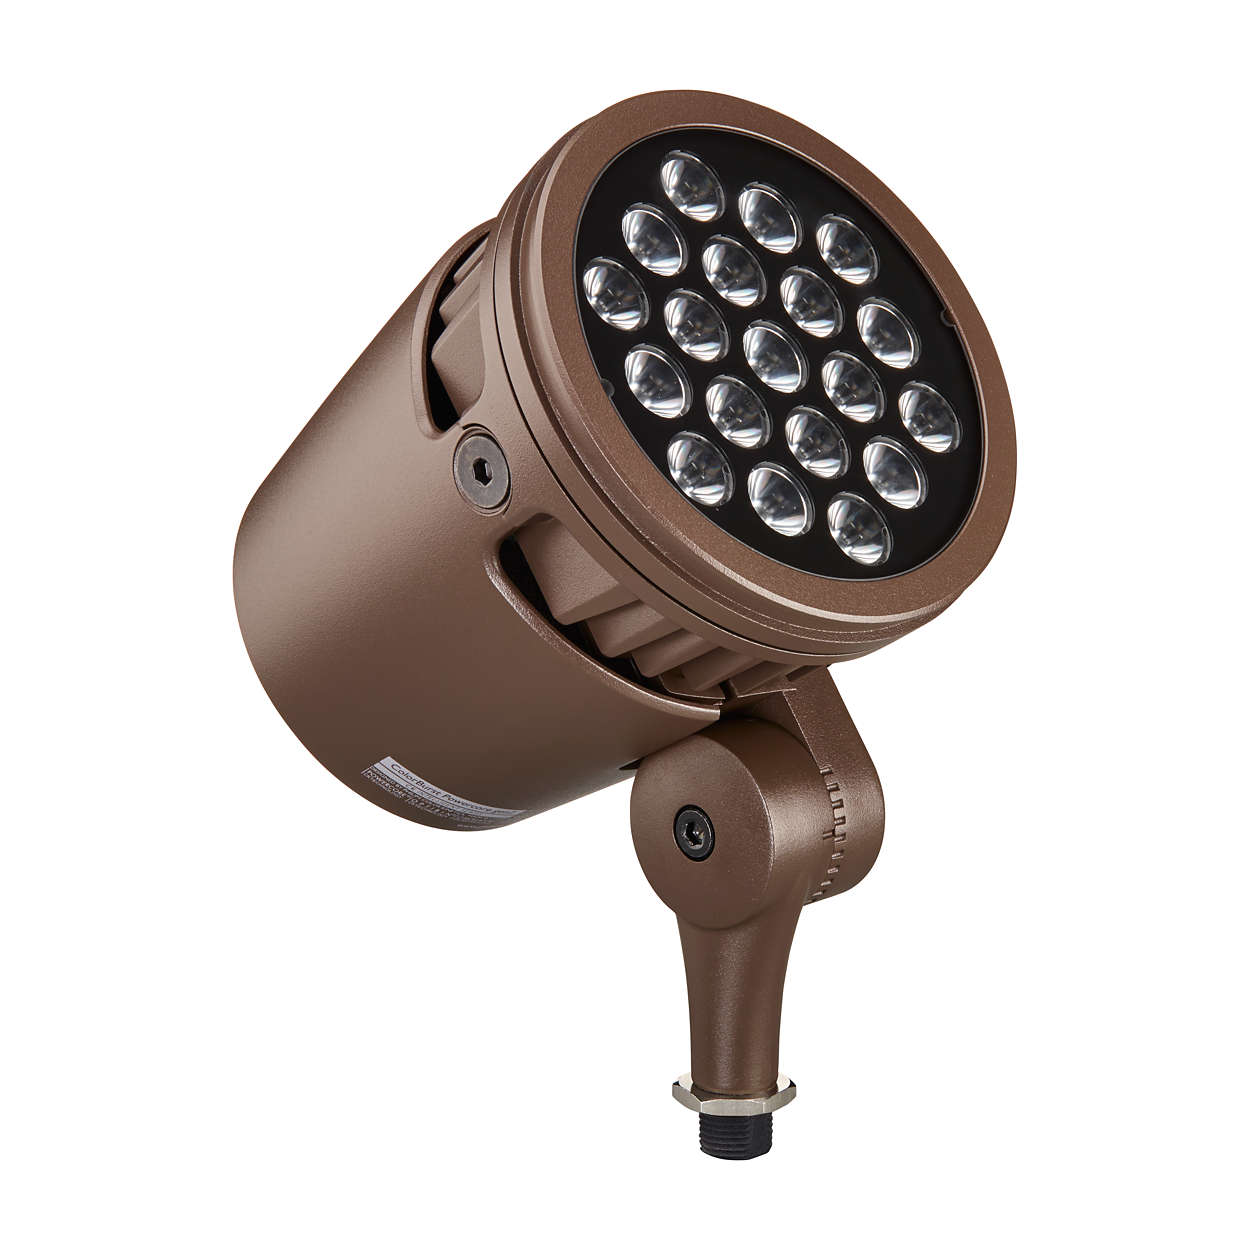 Architectural and landscape LED spotlight with solid white light